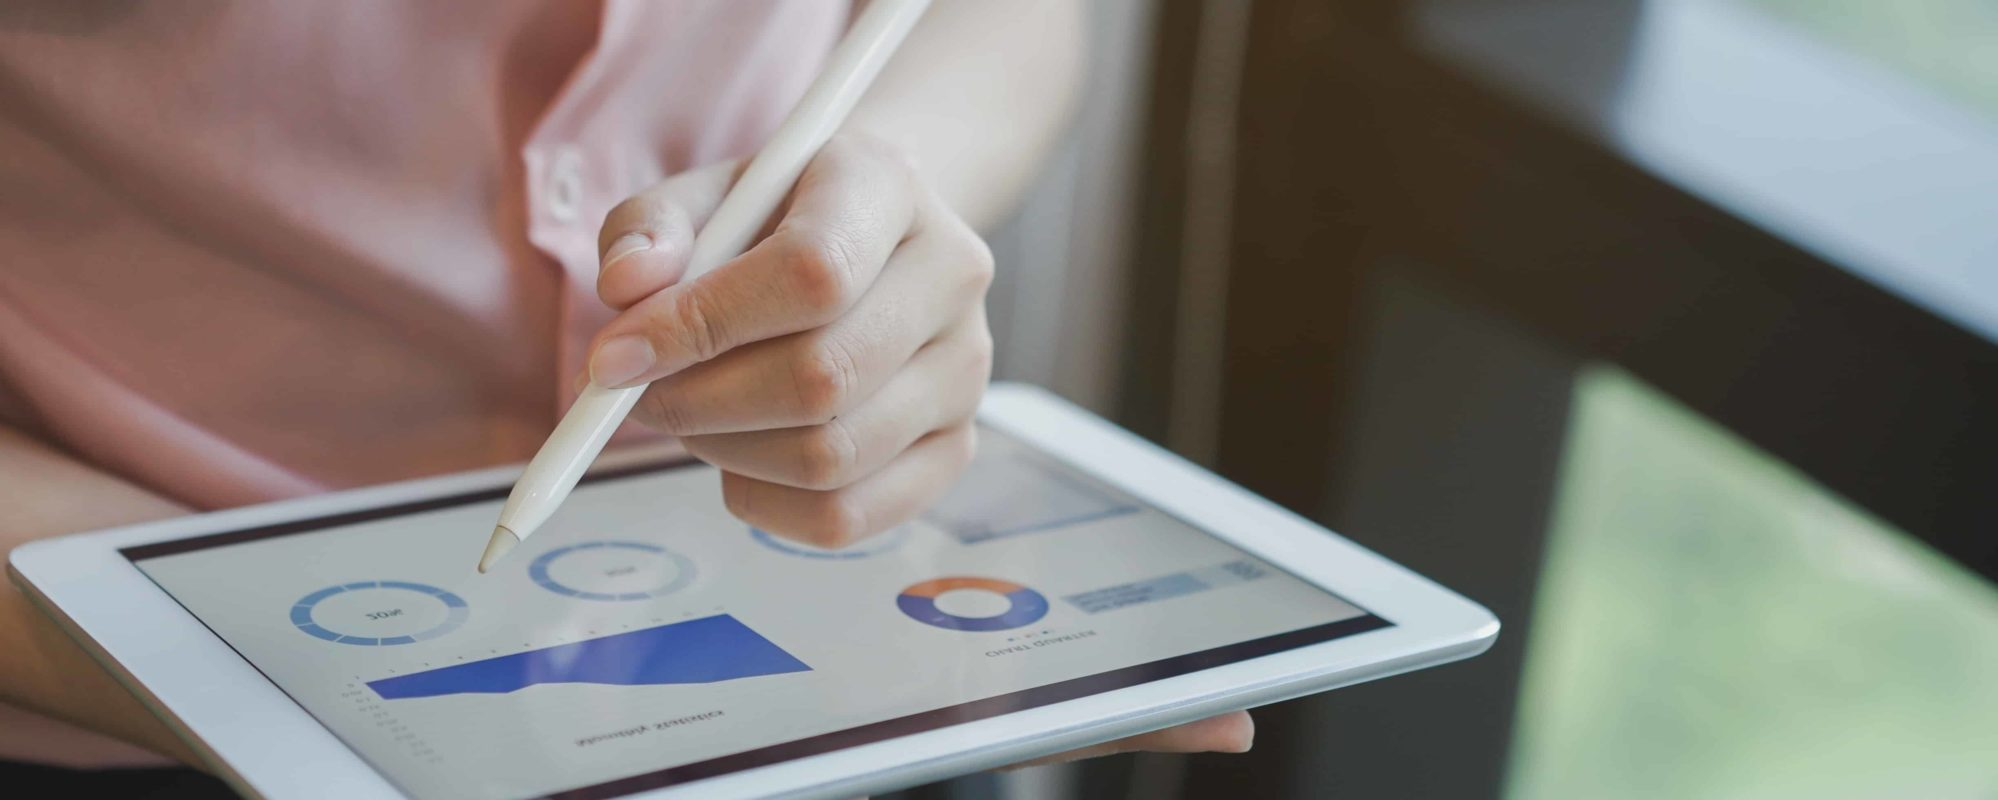 Close up on tablet's screen of accounting outsourcing software with financial reports and graphs